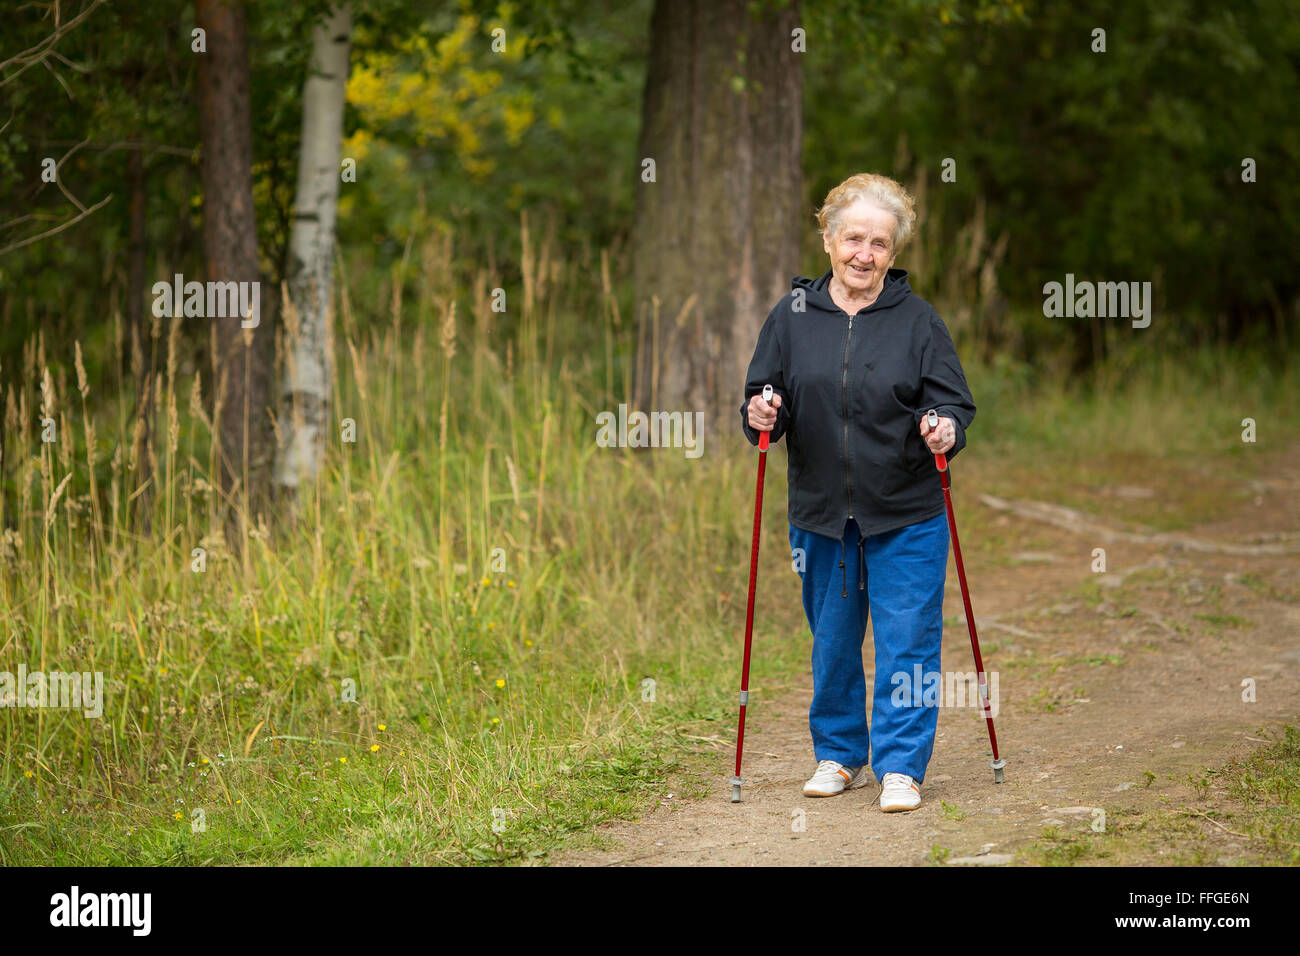 Elderly woman engaged in Nordic walking in the Park. - Stock Image